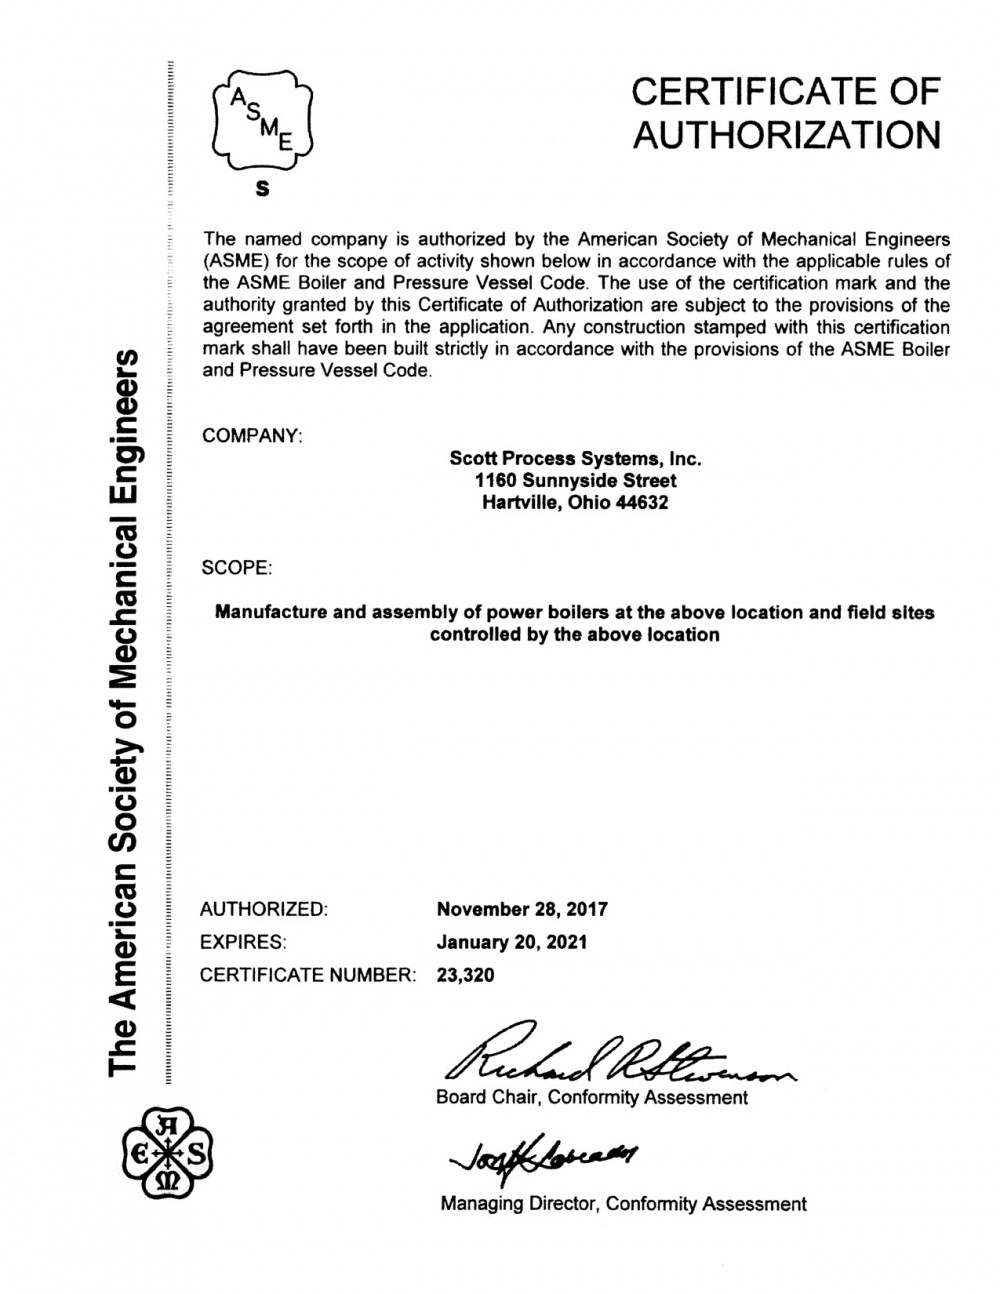 ASME Power Boilers Certificate